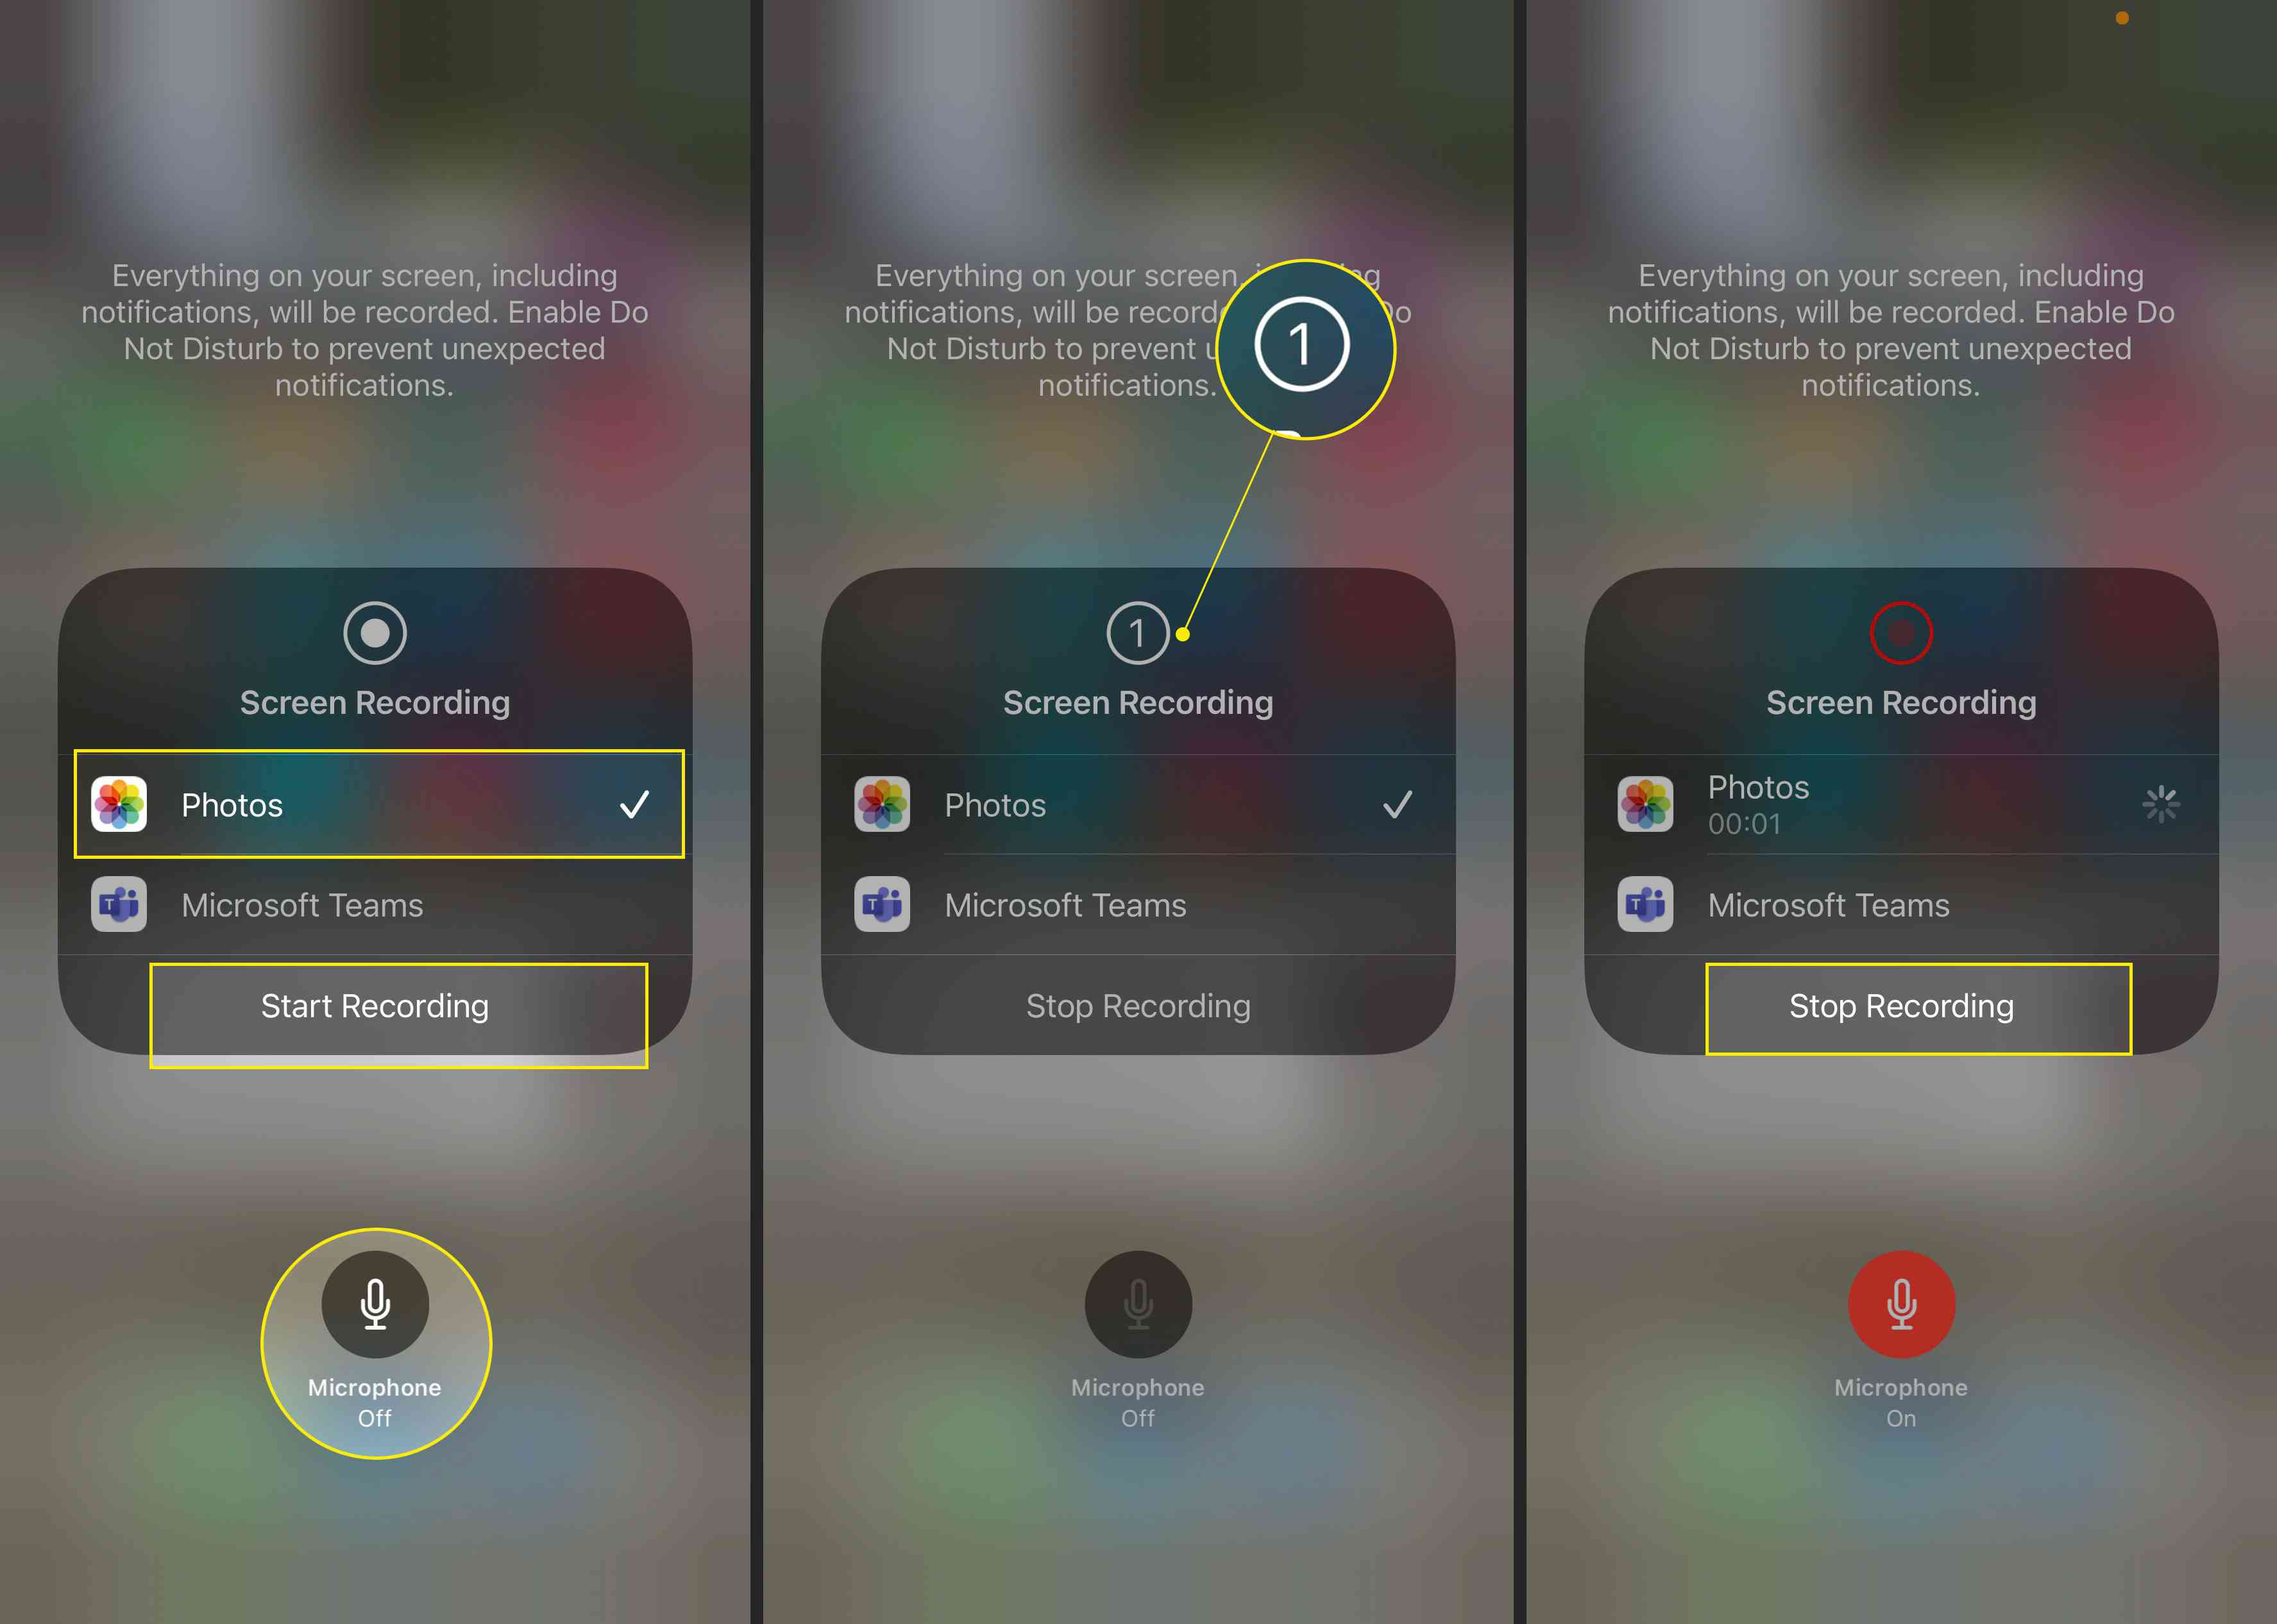 Screen recording on iPhone with Photos, Start Recording, Microphone, countdown, and Stop Recording highlighted